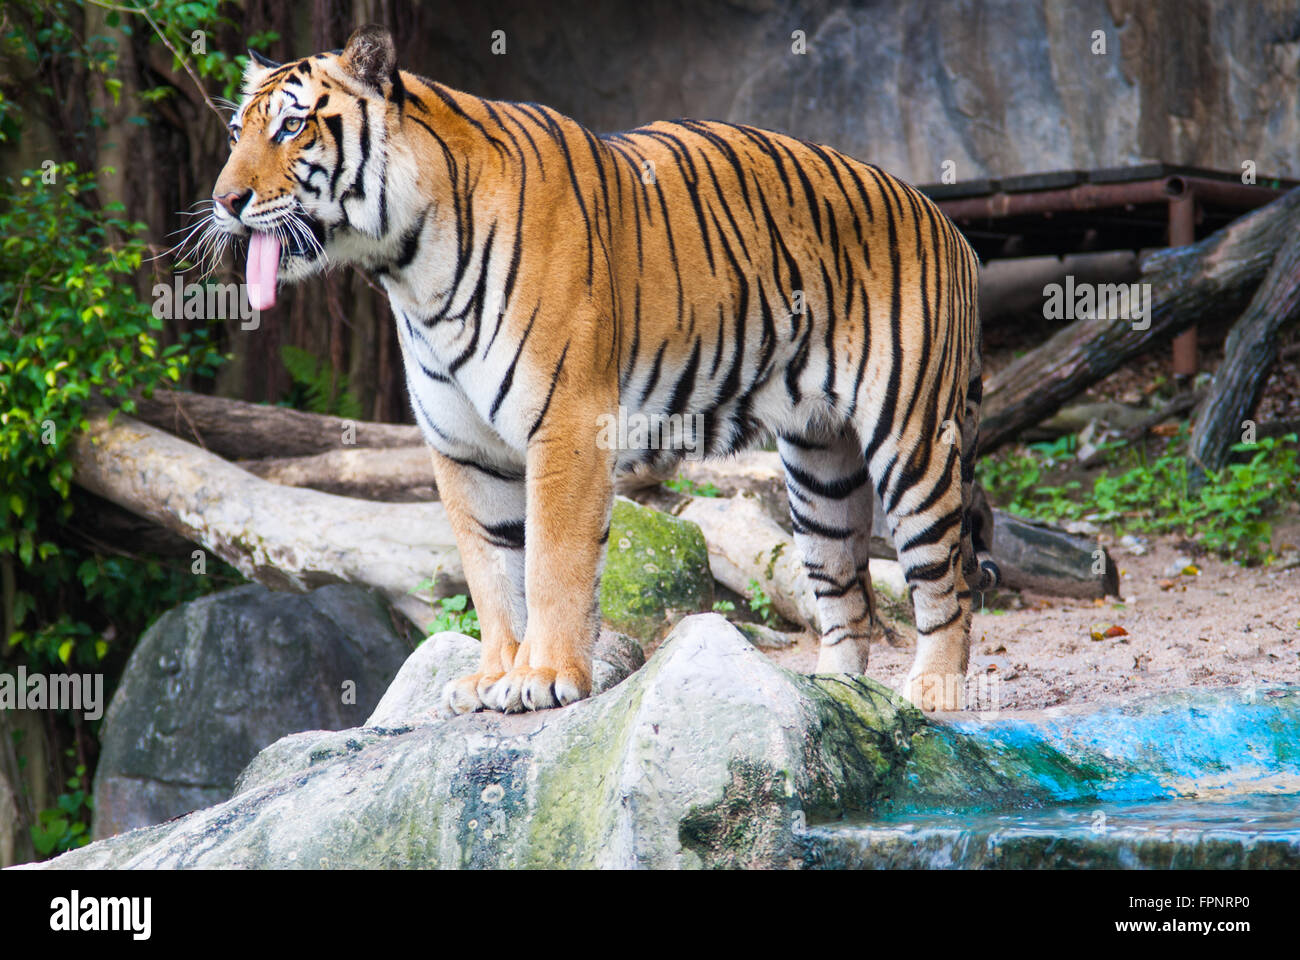 standing striped tiger with tongue in zoo - Stock Image